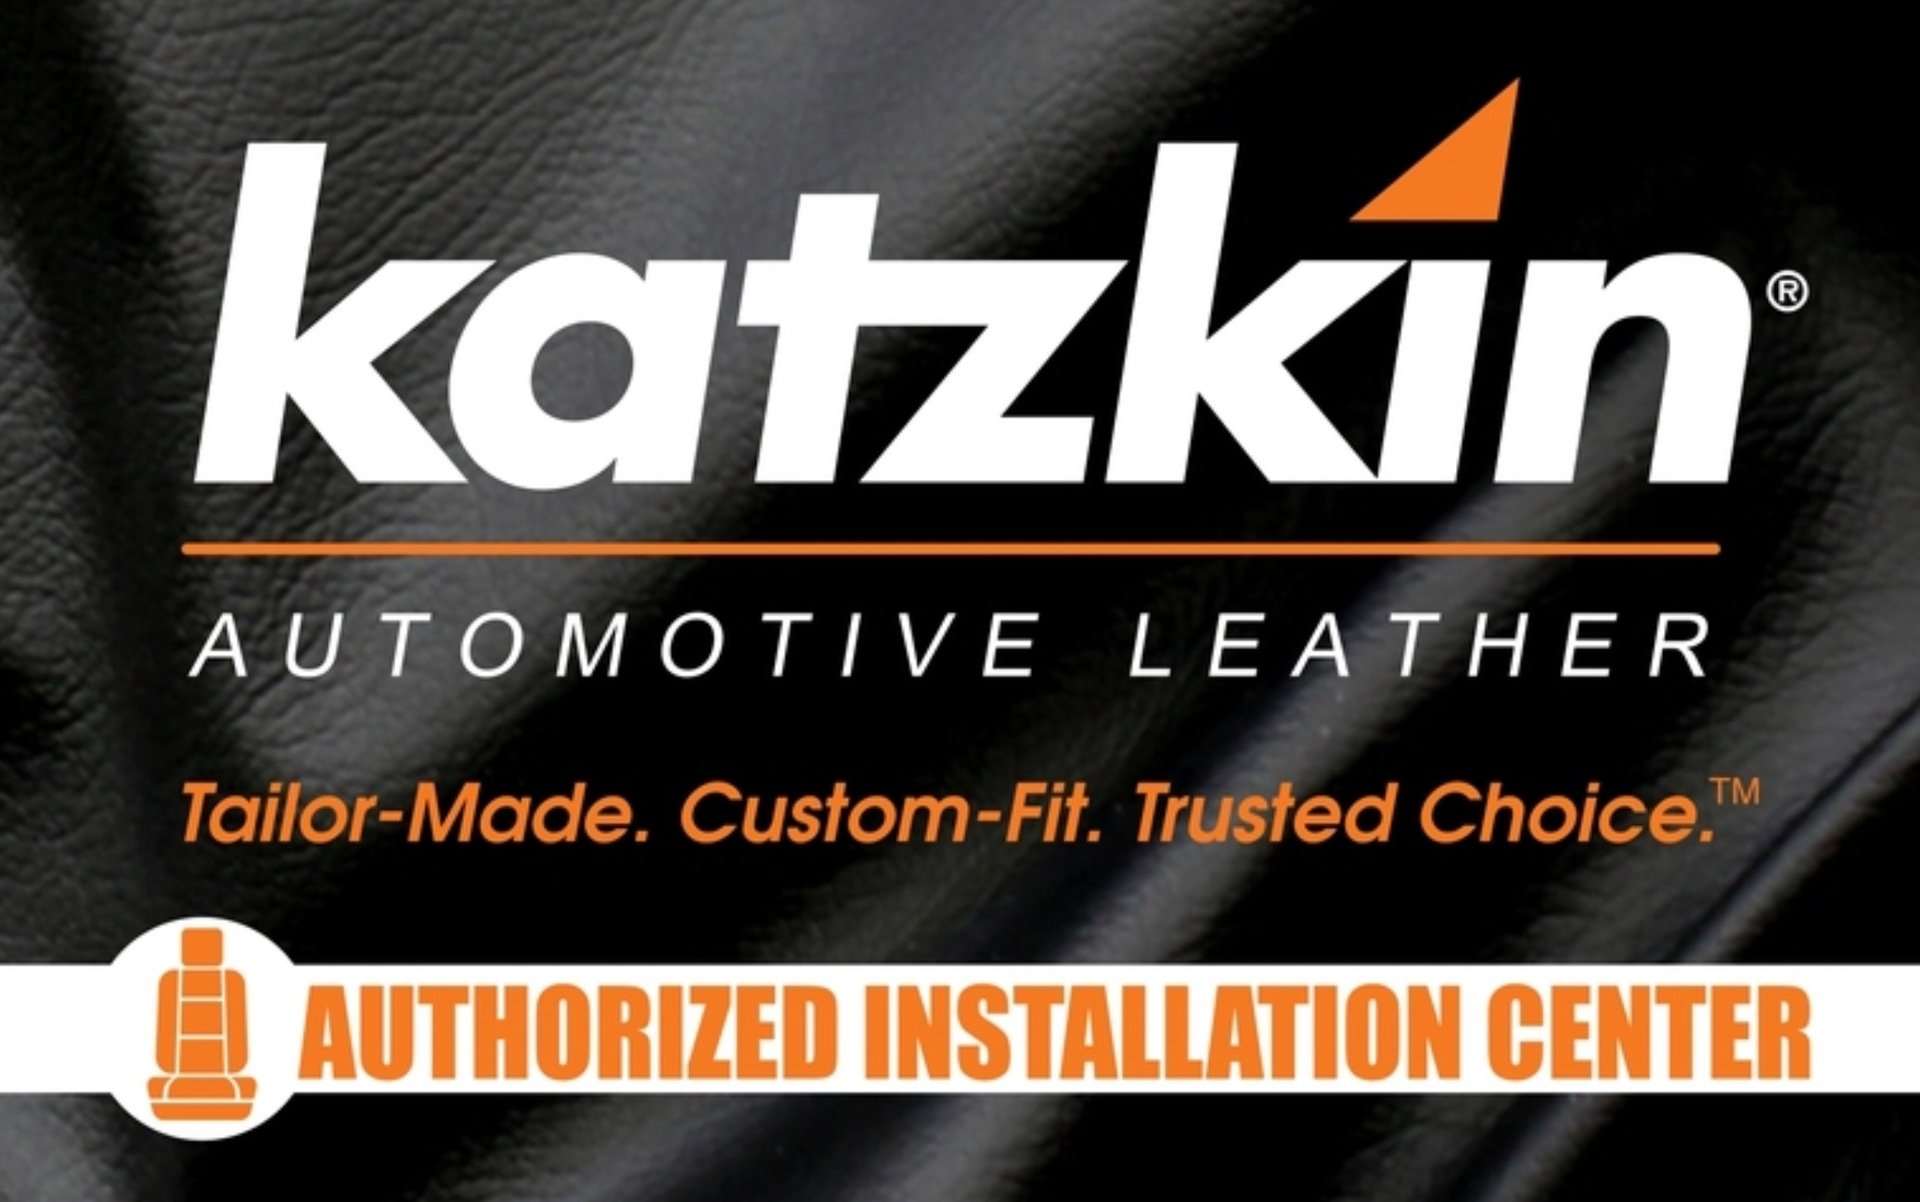 Katzkin Authorized Installation Center